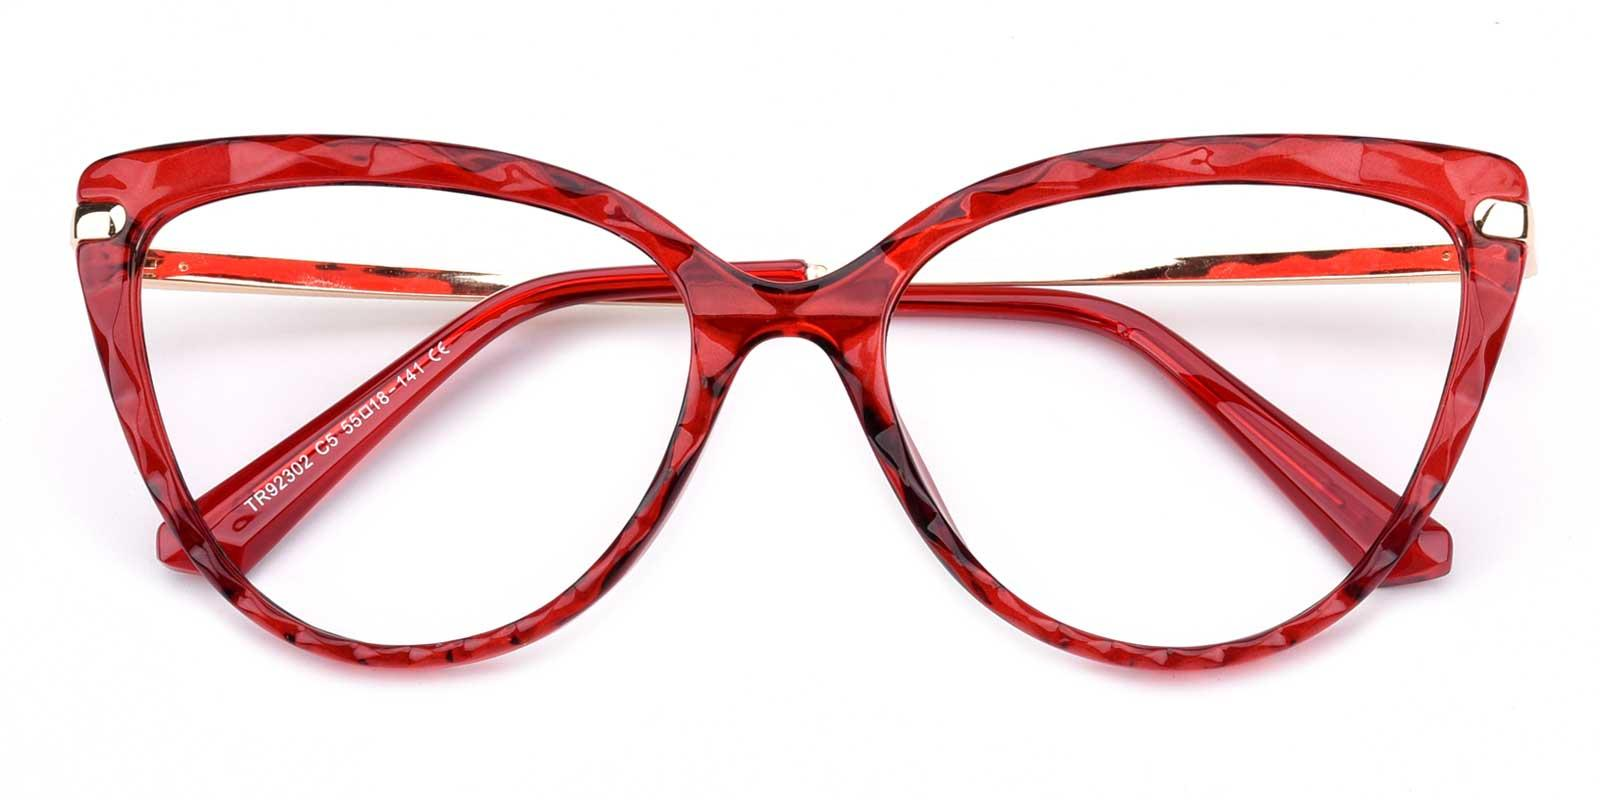 Truda-Red-Cat-Combination-Eyeglasses-detail